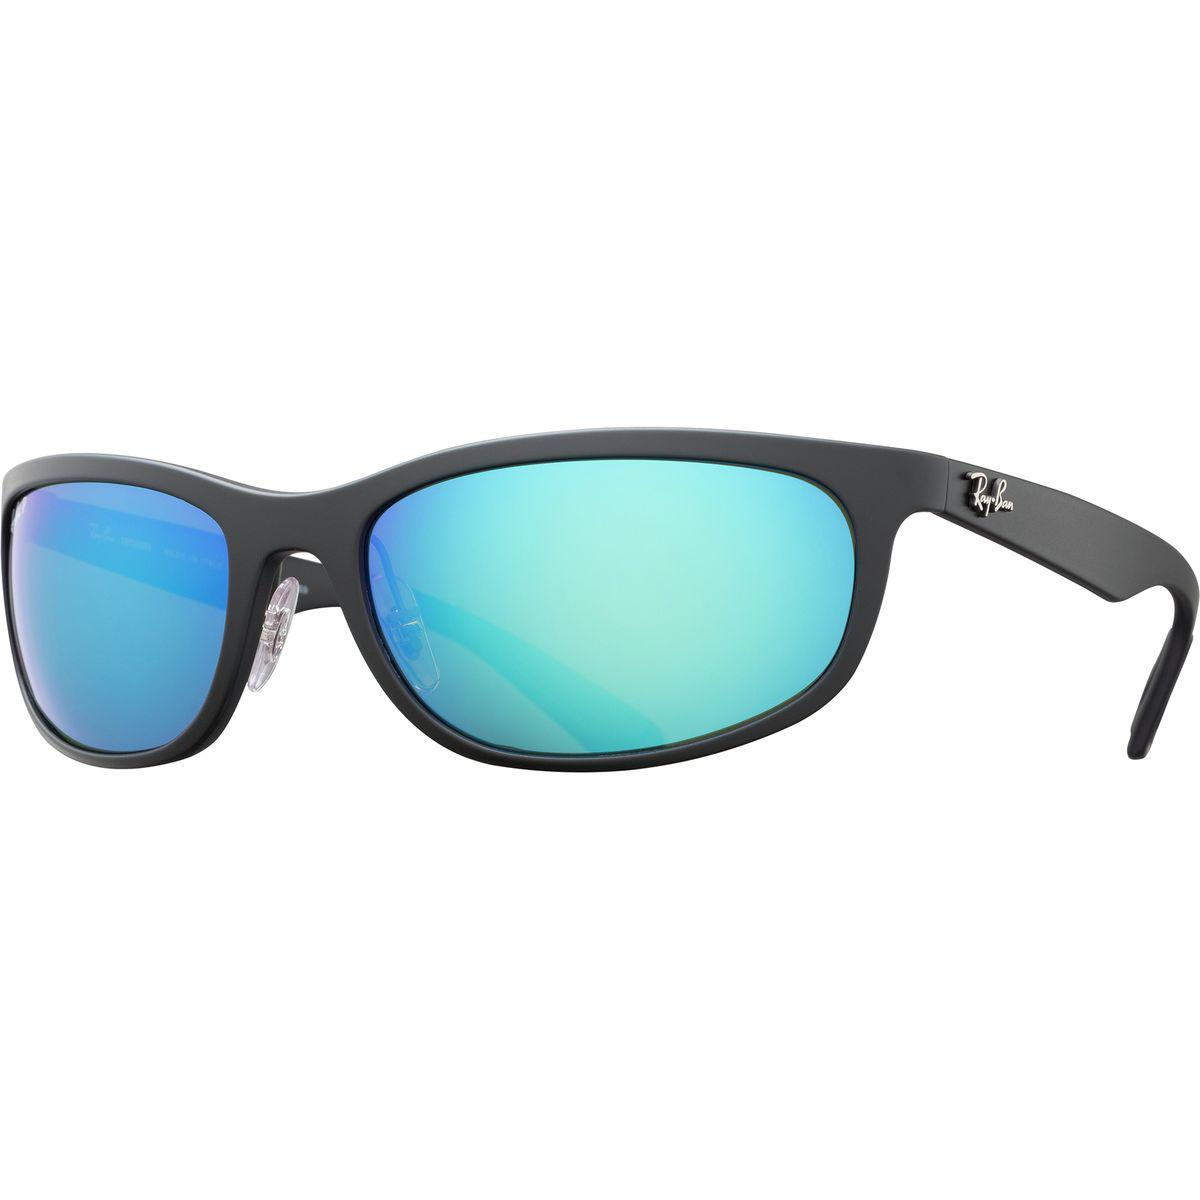 566f38de0ef Lyst - Ray-Ban Rb4265 Chromance Sunglasses - Polarized in Blue for Men